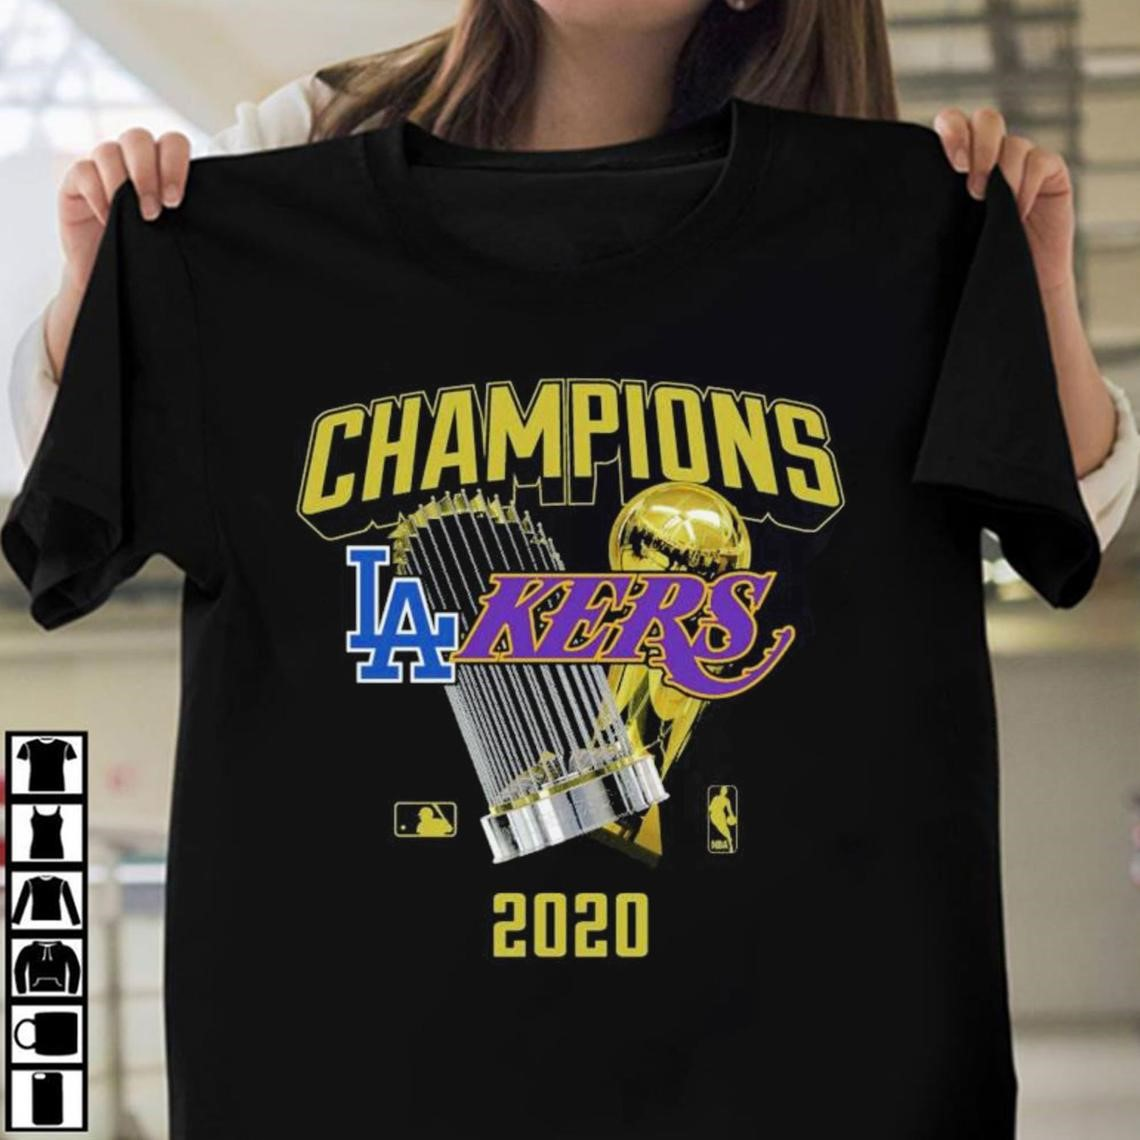 Los Angeles Dodgers Lakers 2020 World Champions Trophies Shirt 2020 World Champions Trophies